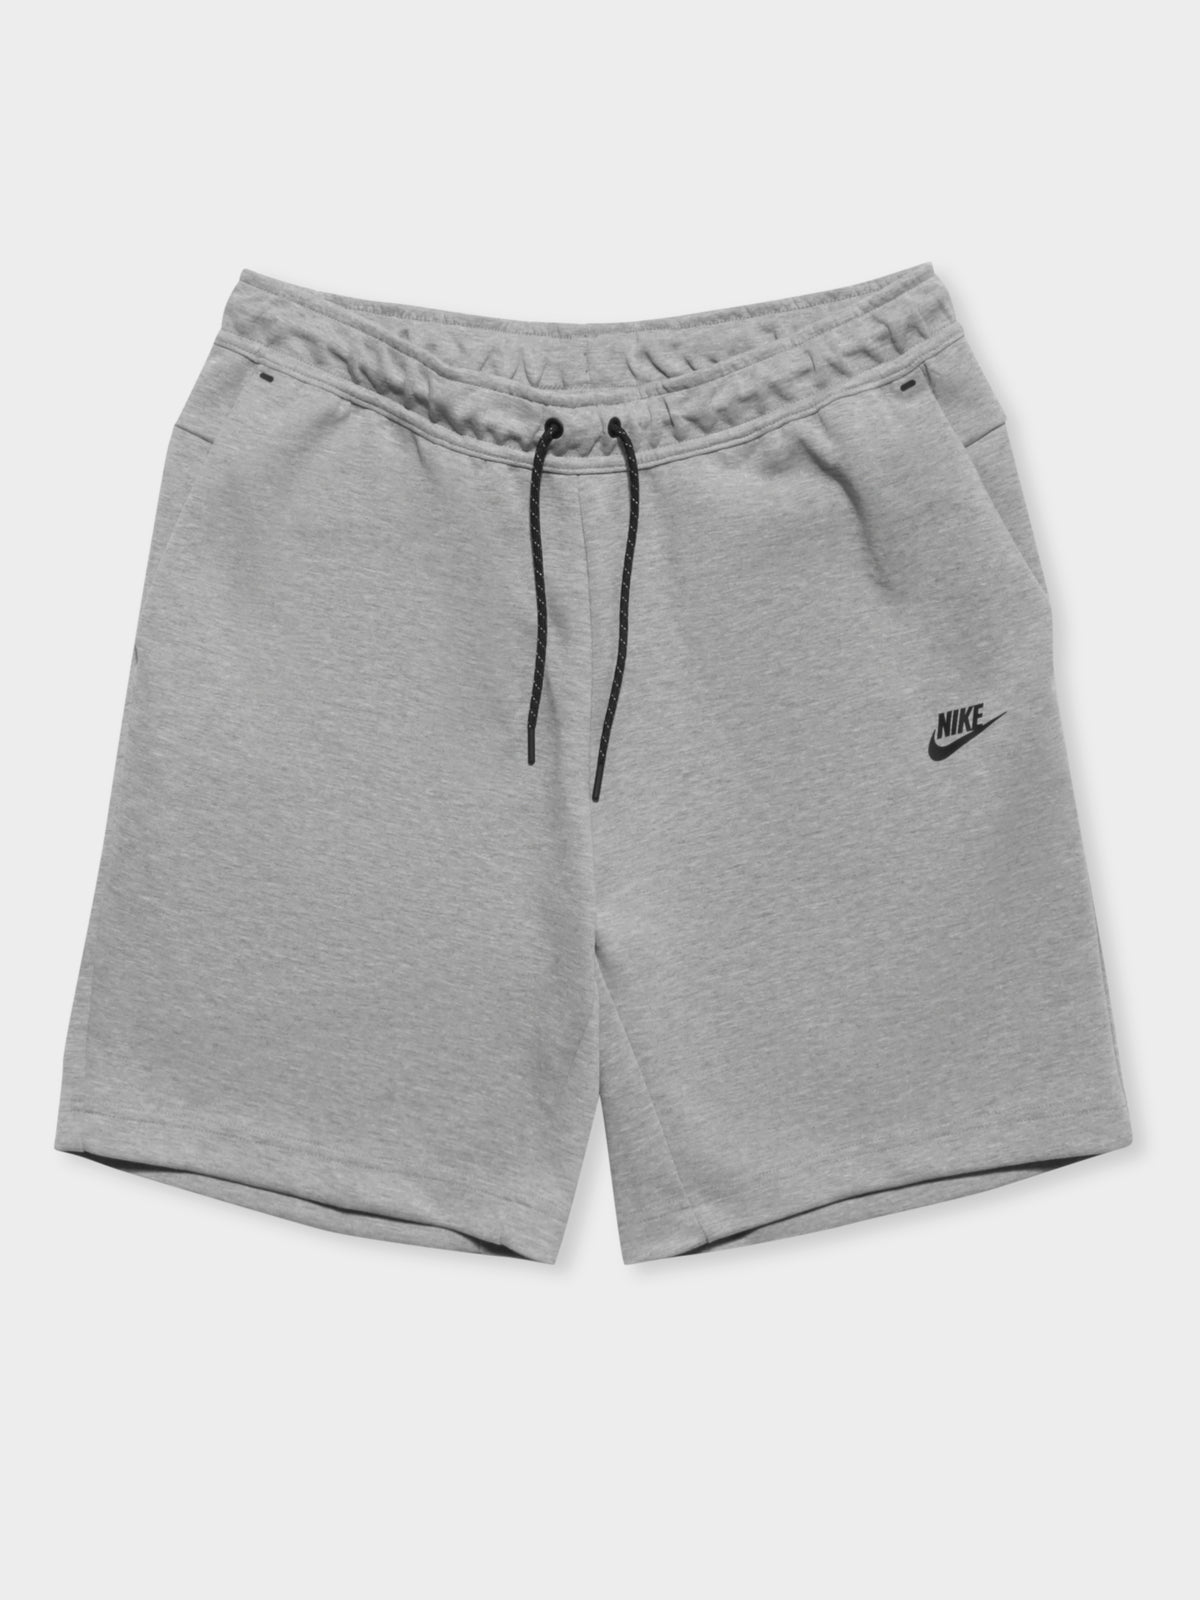 Sportswear Tech Fleece Shorts in Dark Grey